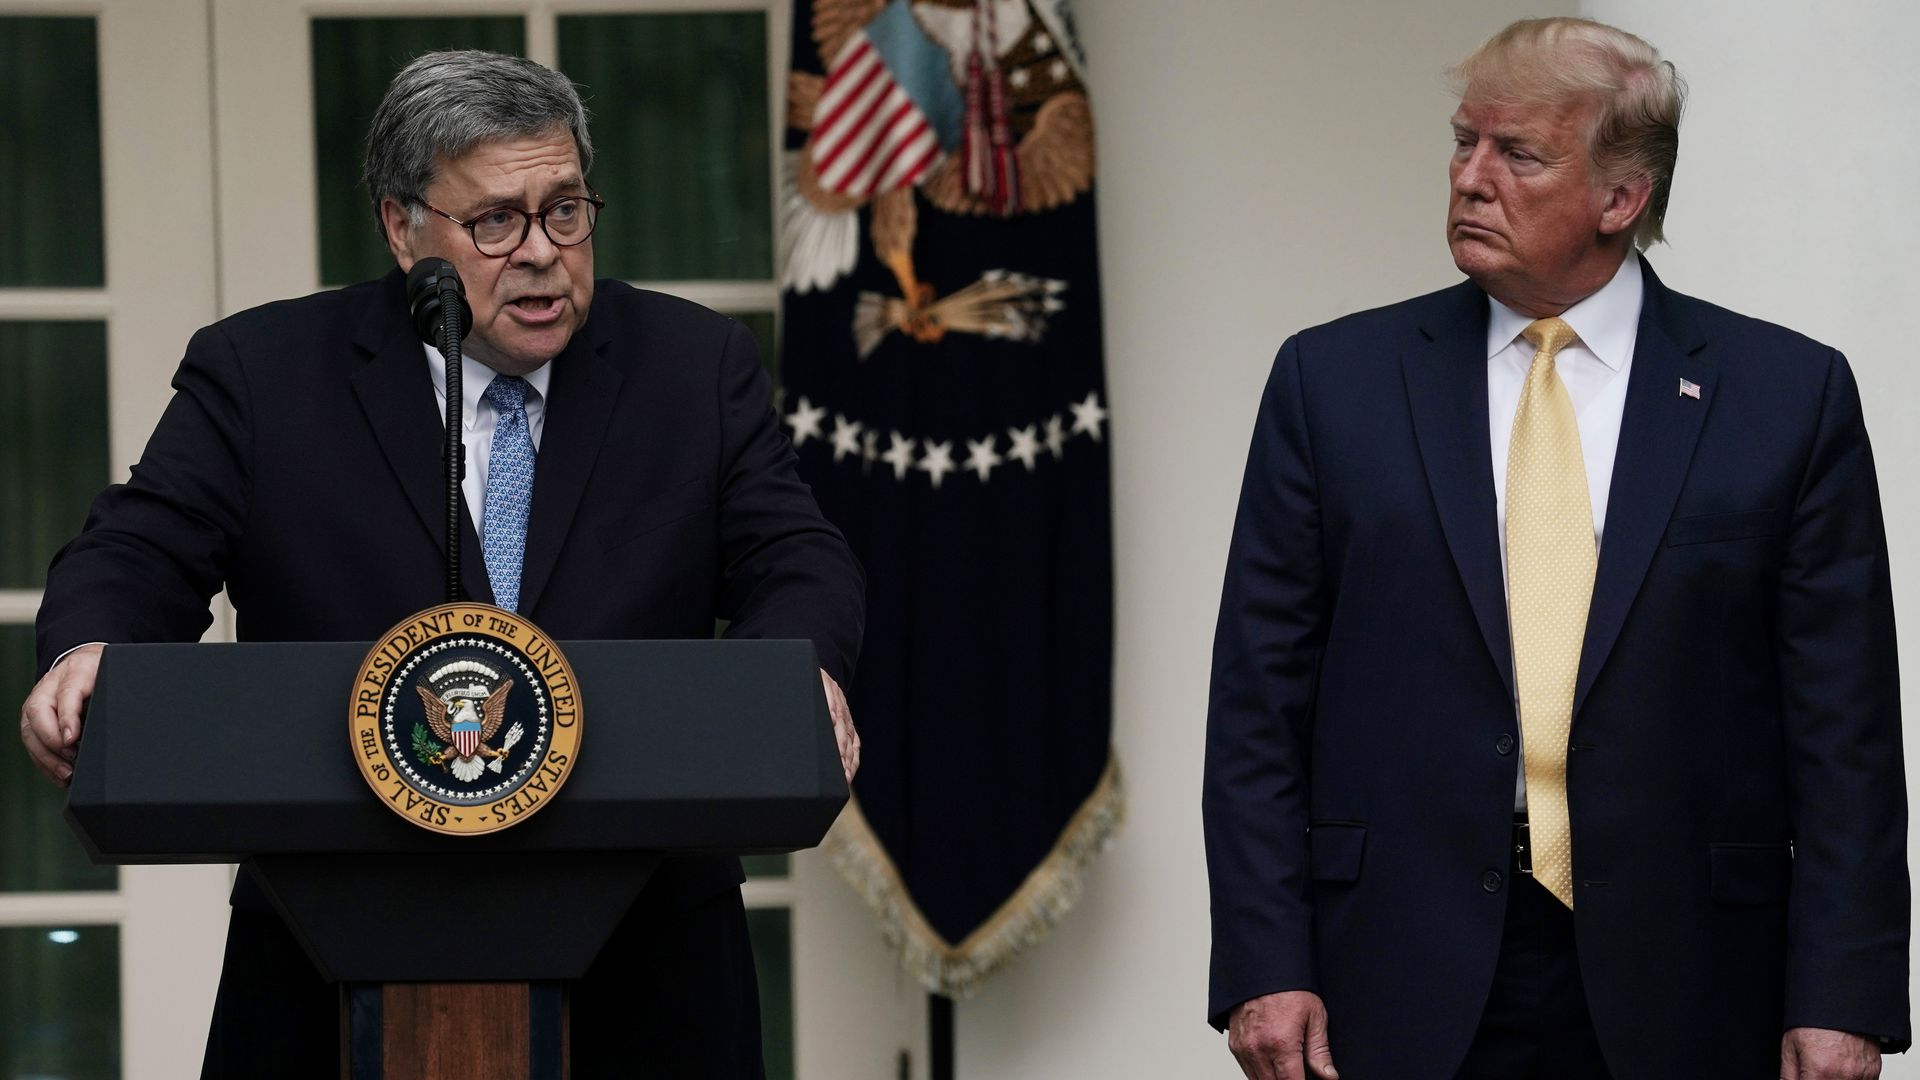 WashPost: Barr opposes key Russia probe finding by inspector general